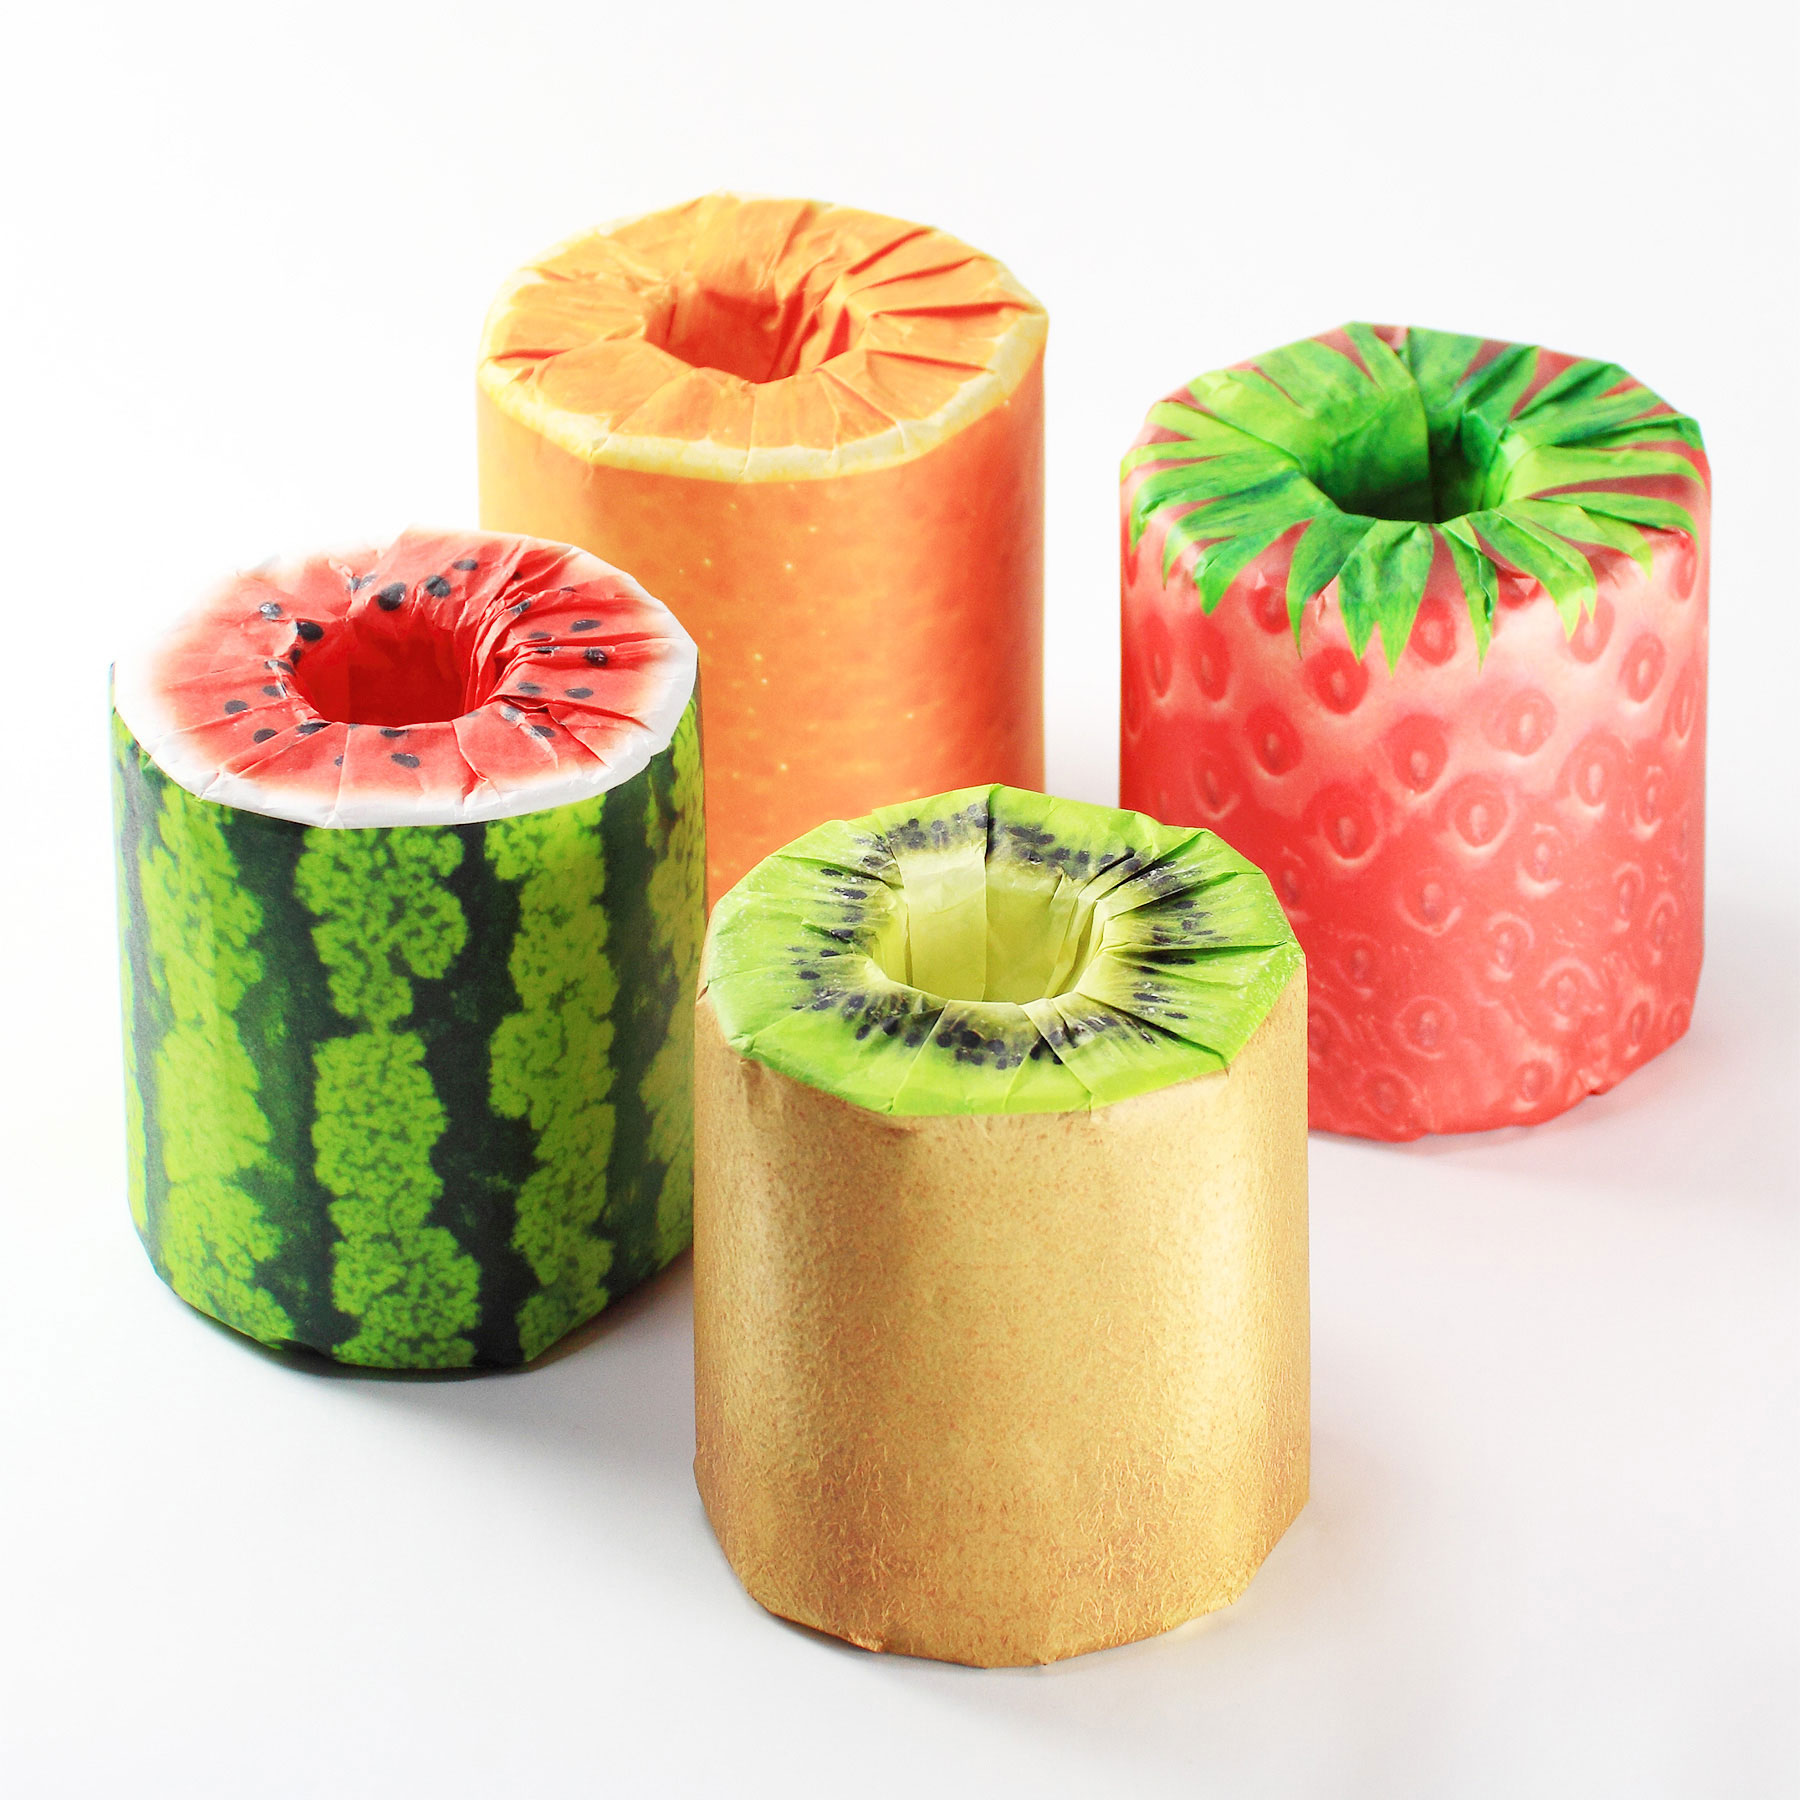 The Fruits Toilet Paper